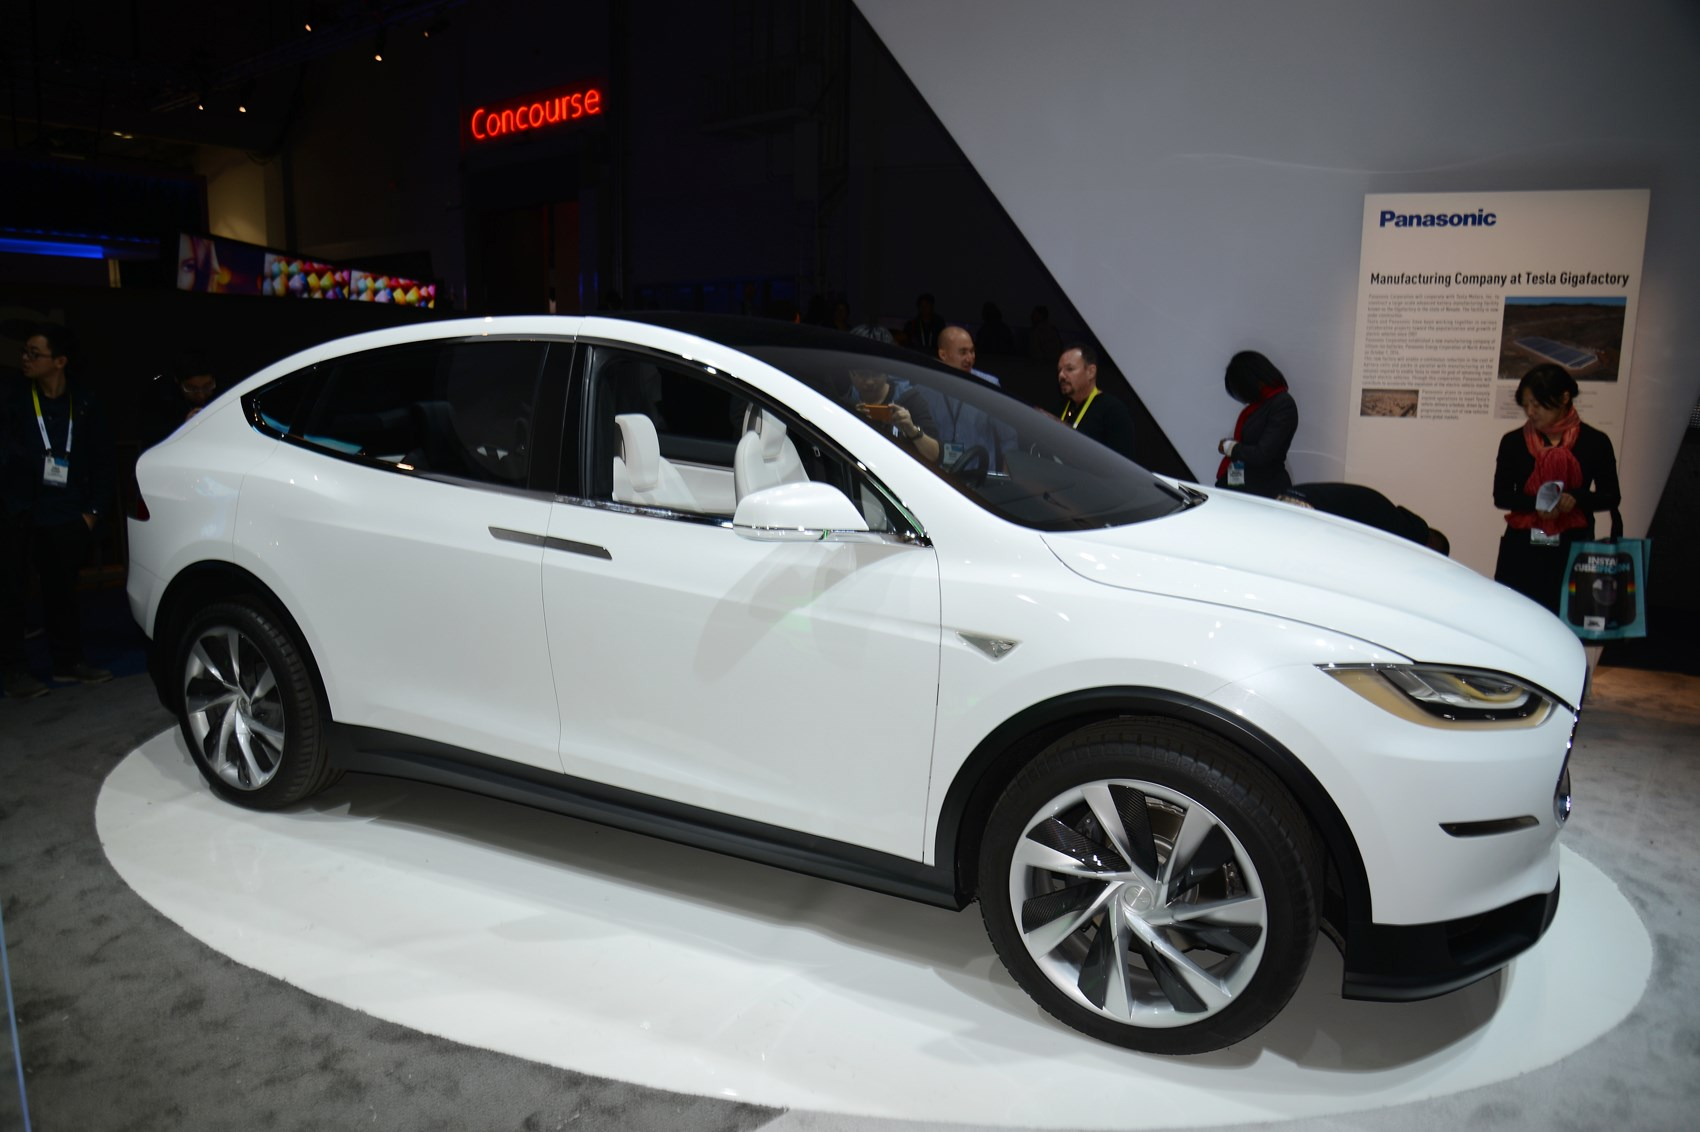 new tesla model x hands-on review: six reasons it'll shake up the